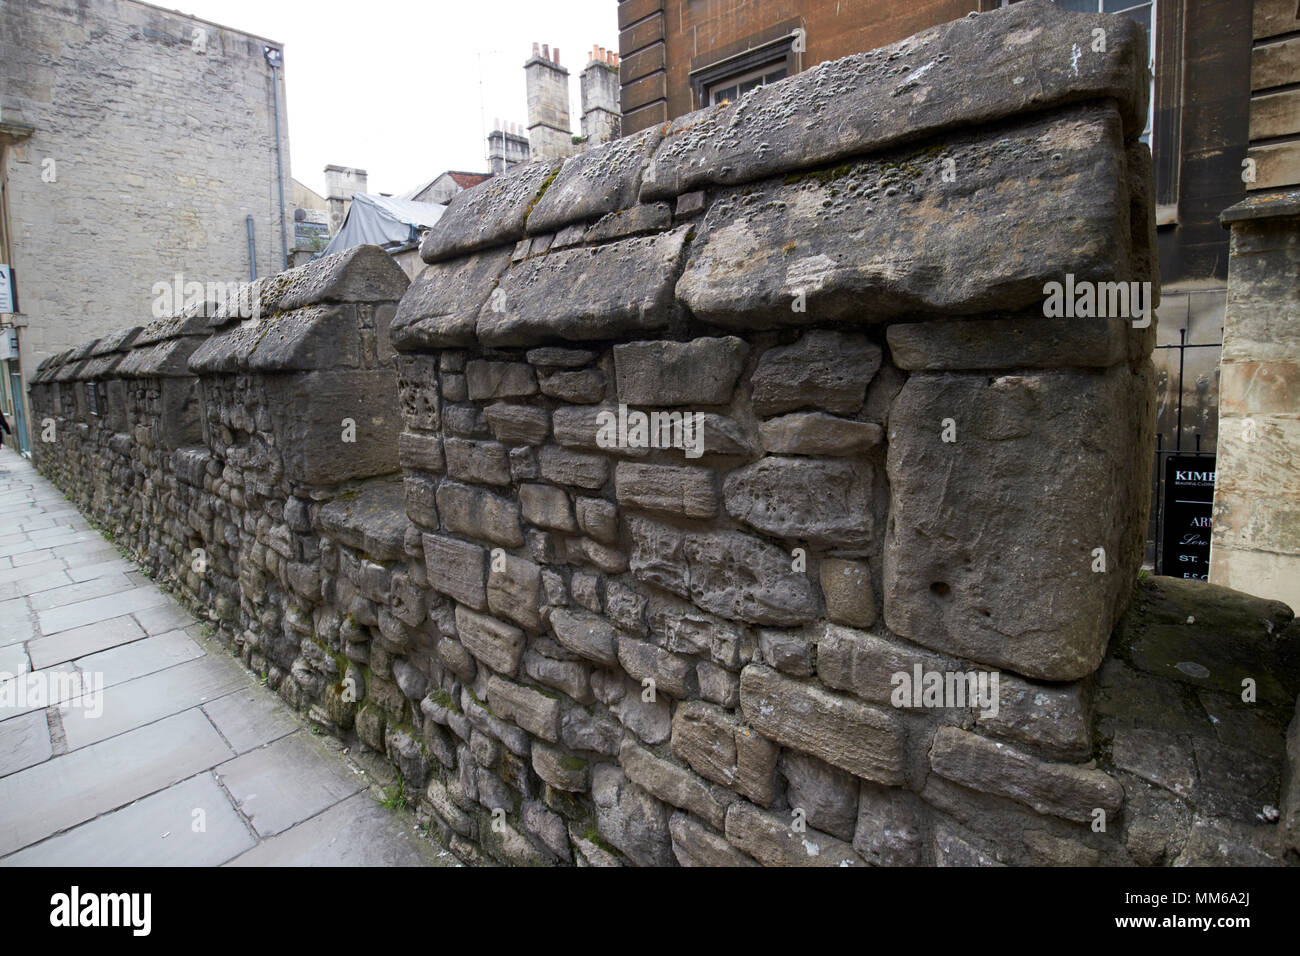 remaining part of the medieval wall of the city of Bath England UK - Stock Image